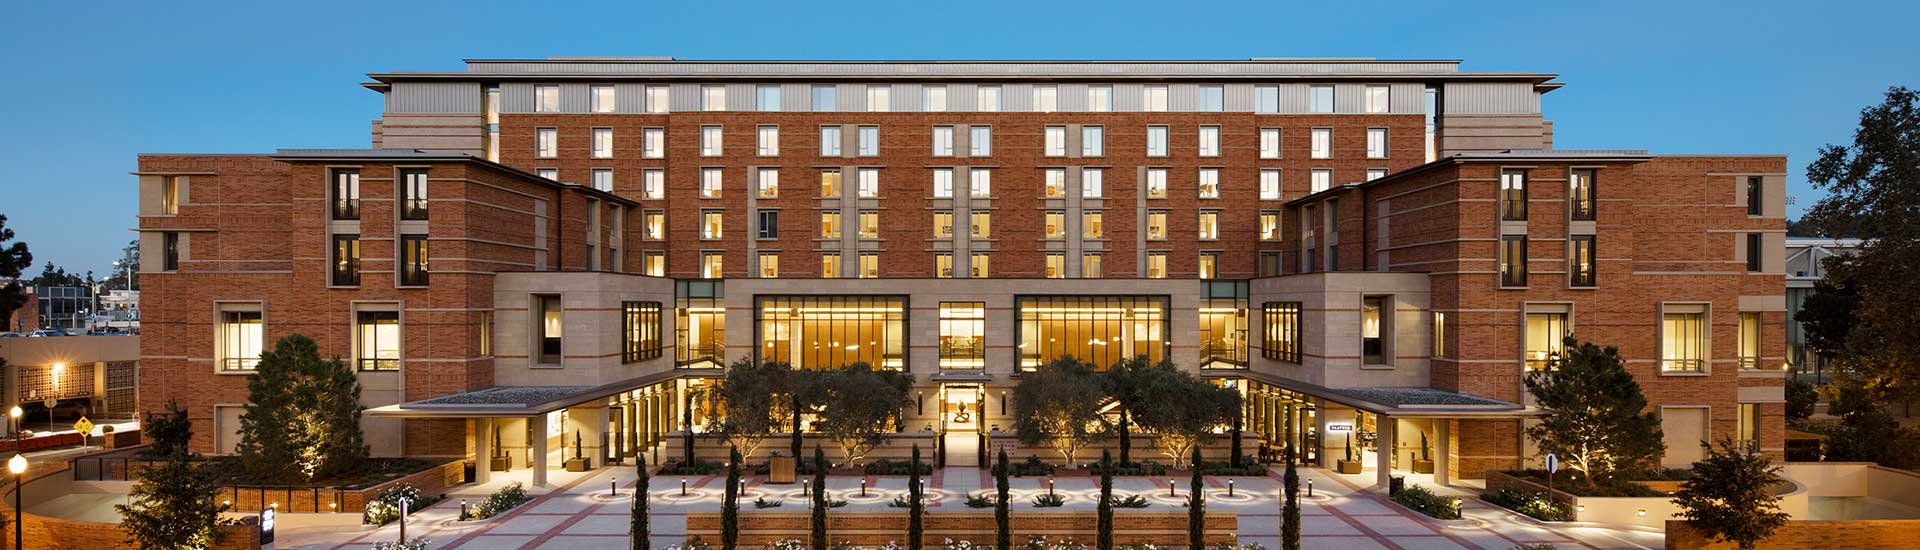 front facing view of ucla luskin conference center and hotel